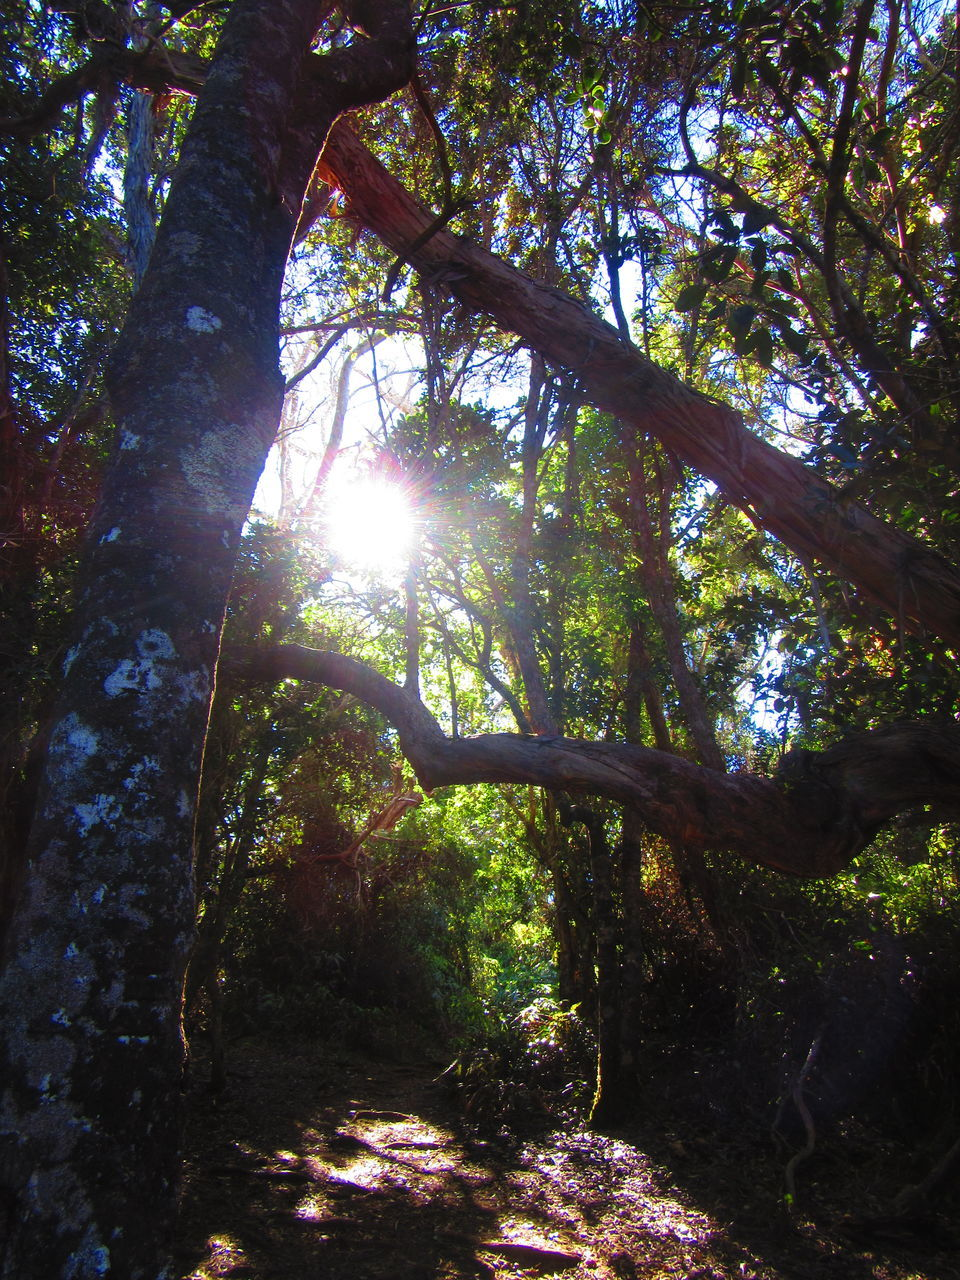 tree, nature, tranquility, sunlight, tranquil scene, sunbeam, forest, growth, beauty in nature, day, branch, no people, tree trunk, scenics, outdoors, low angle view